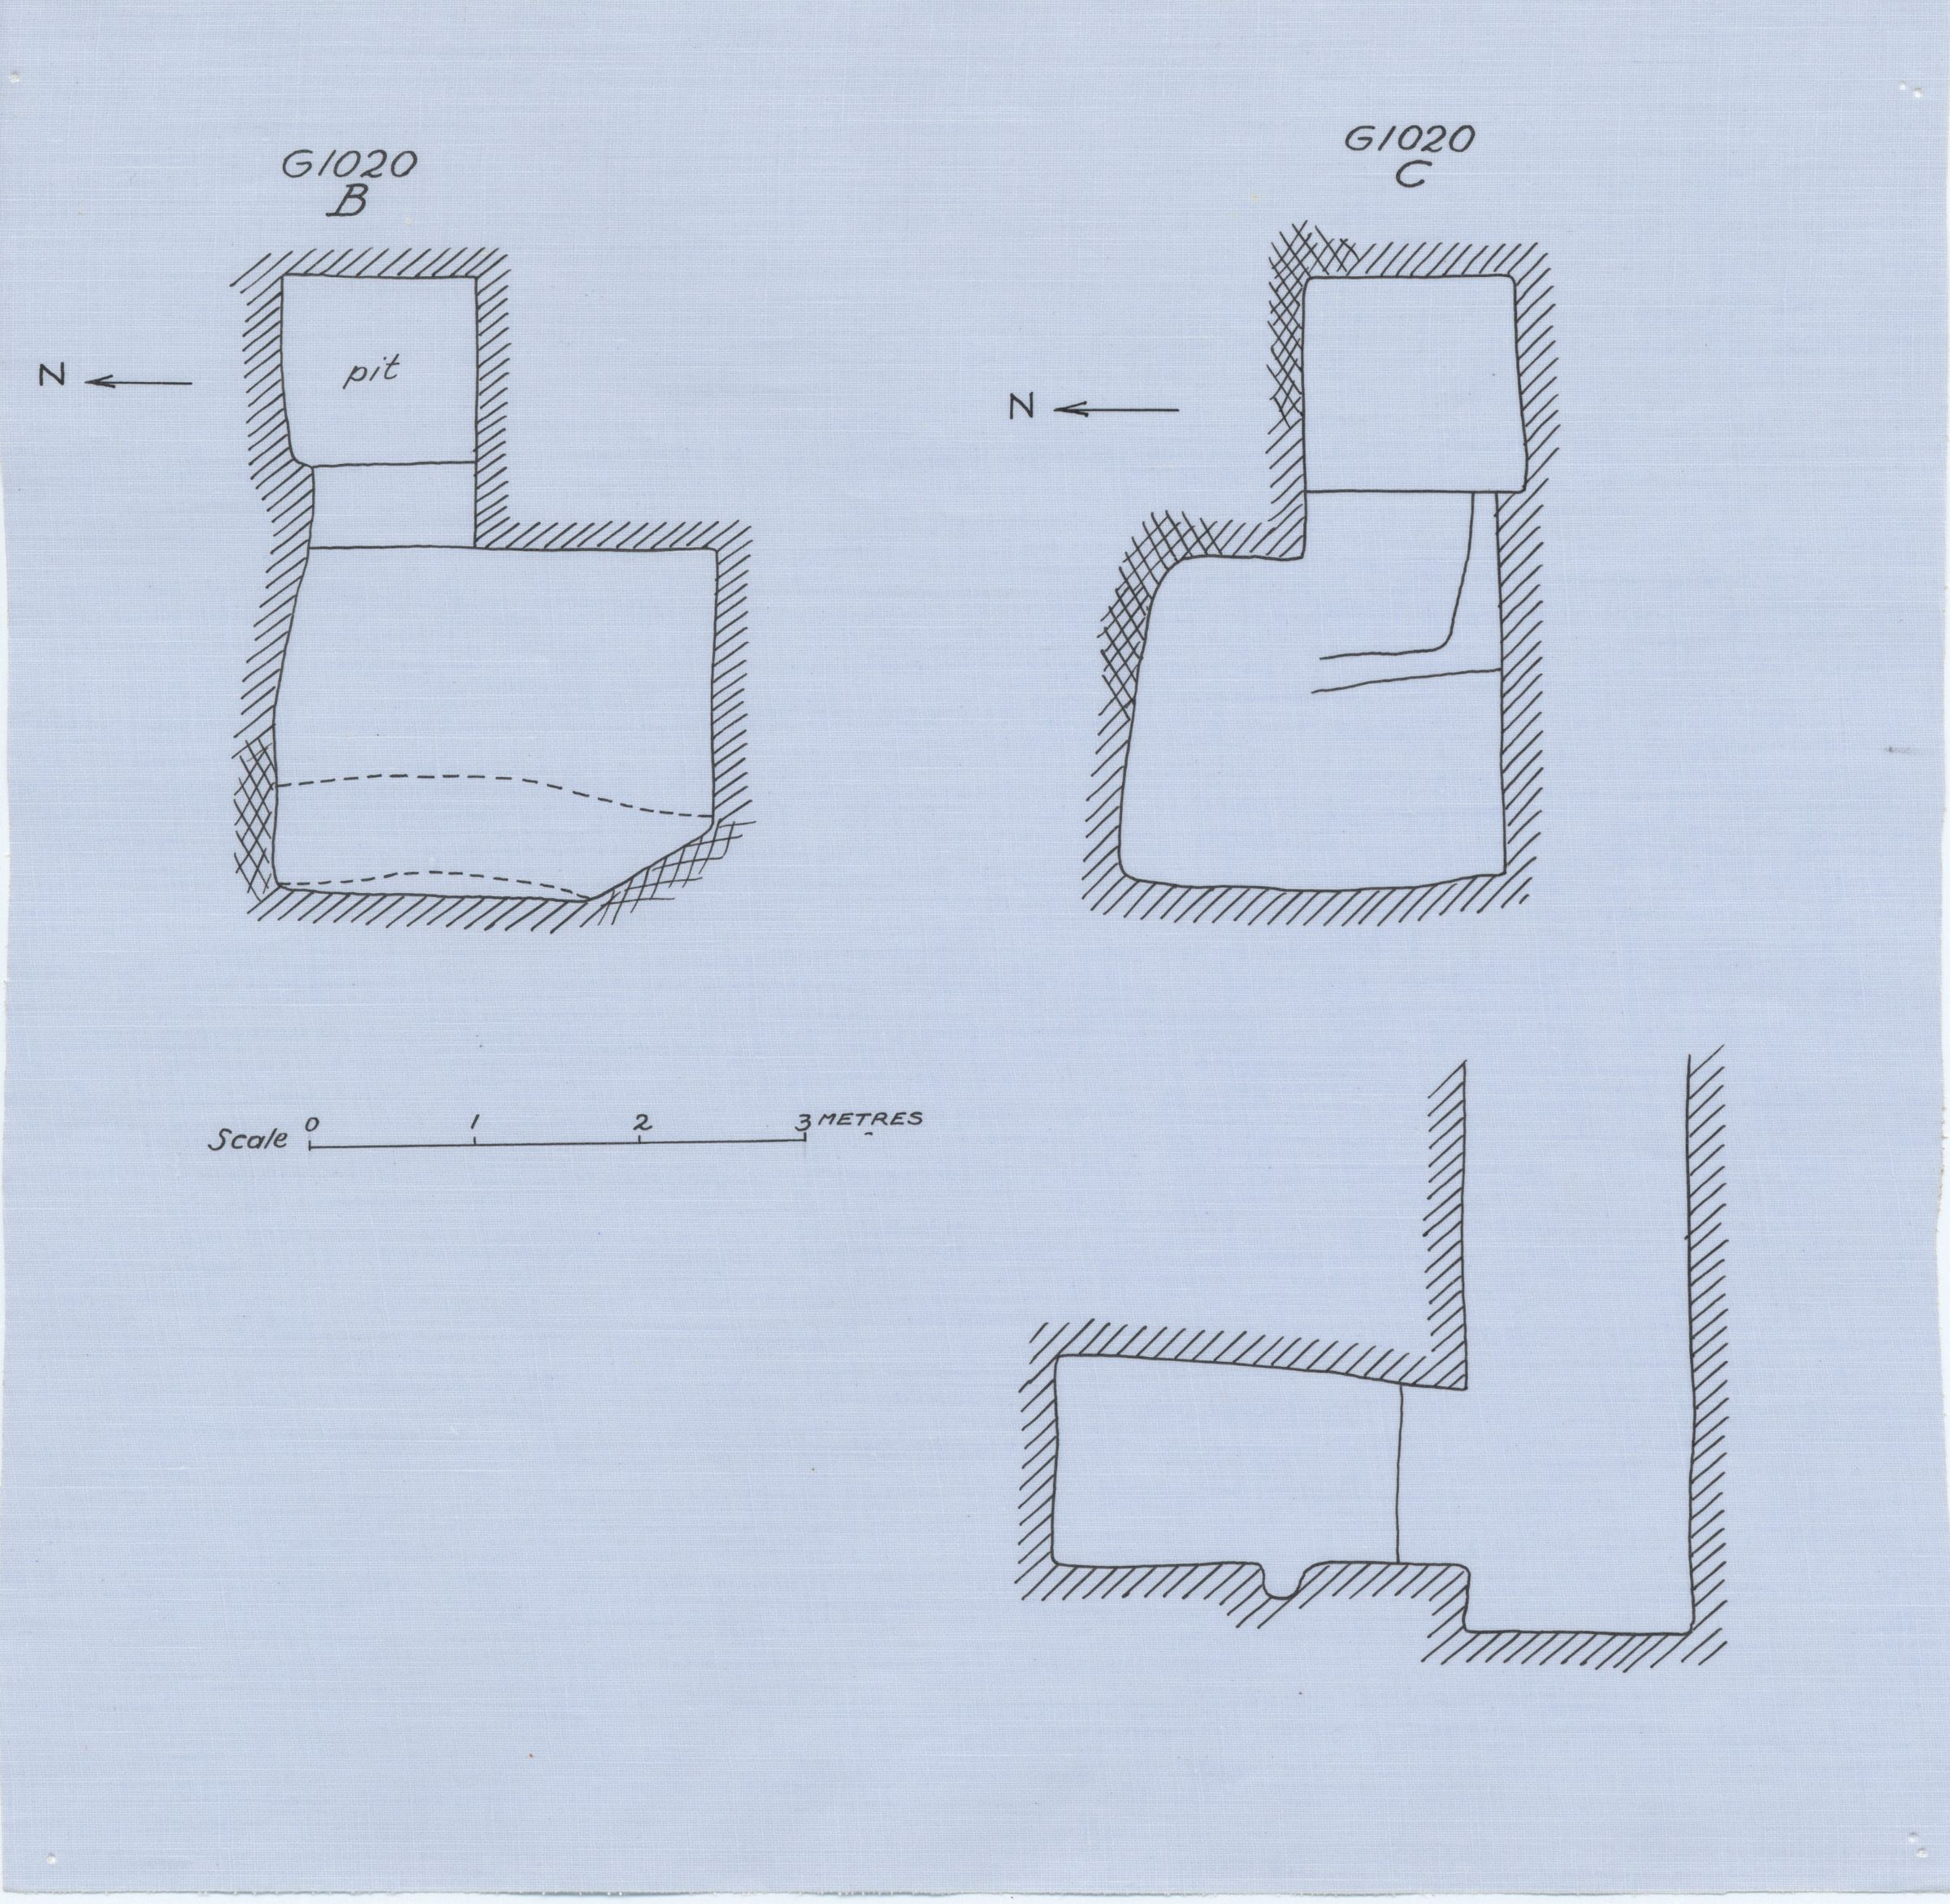 Maps and plans: G 1020, Shaft B and C